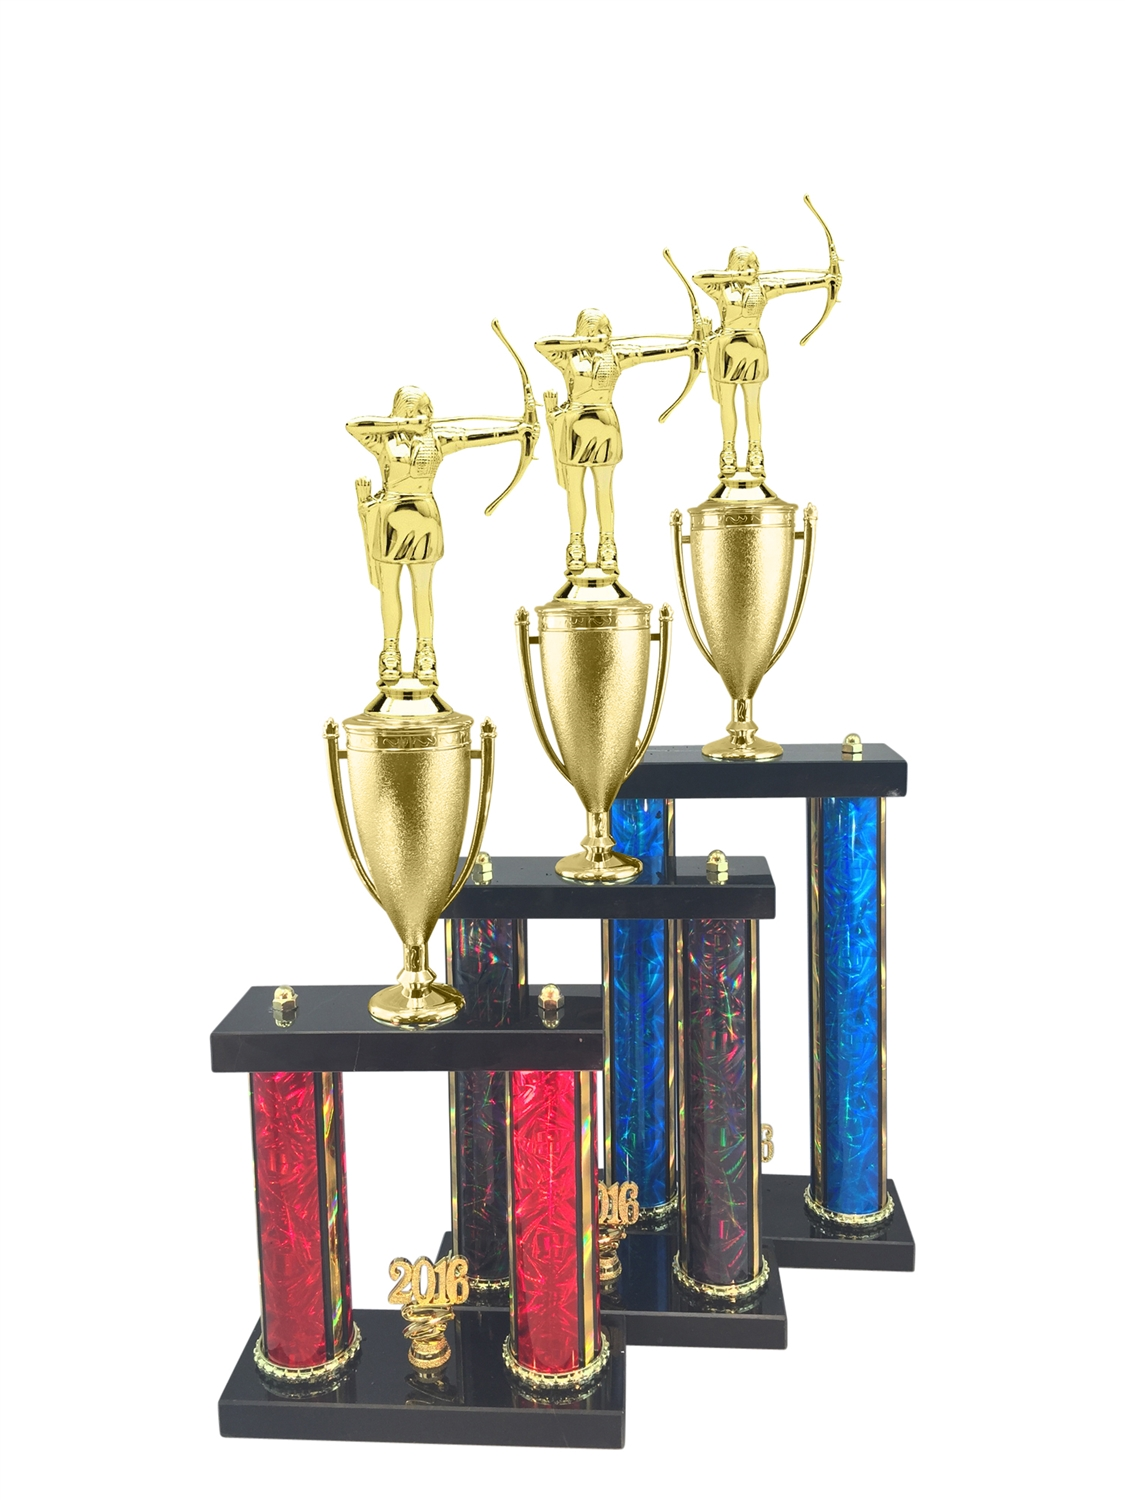 Female Archery Trophy Available in 11 Color & 3 Size Options